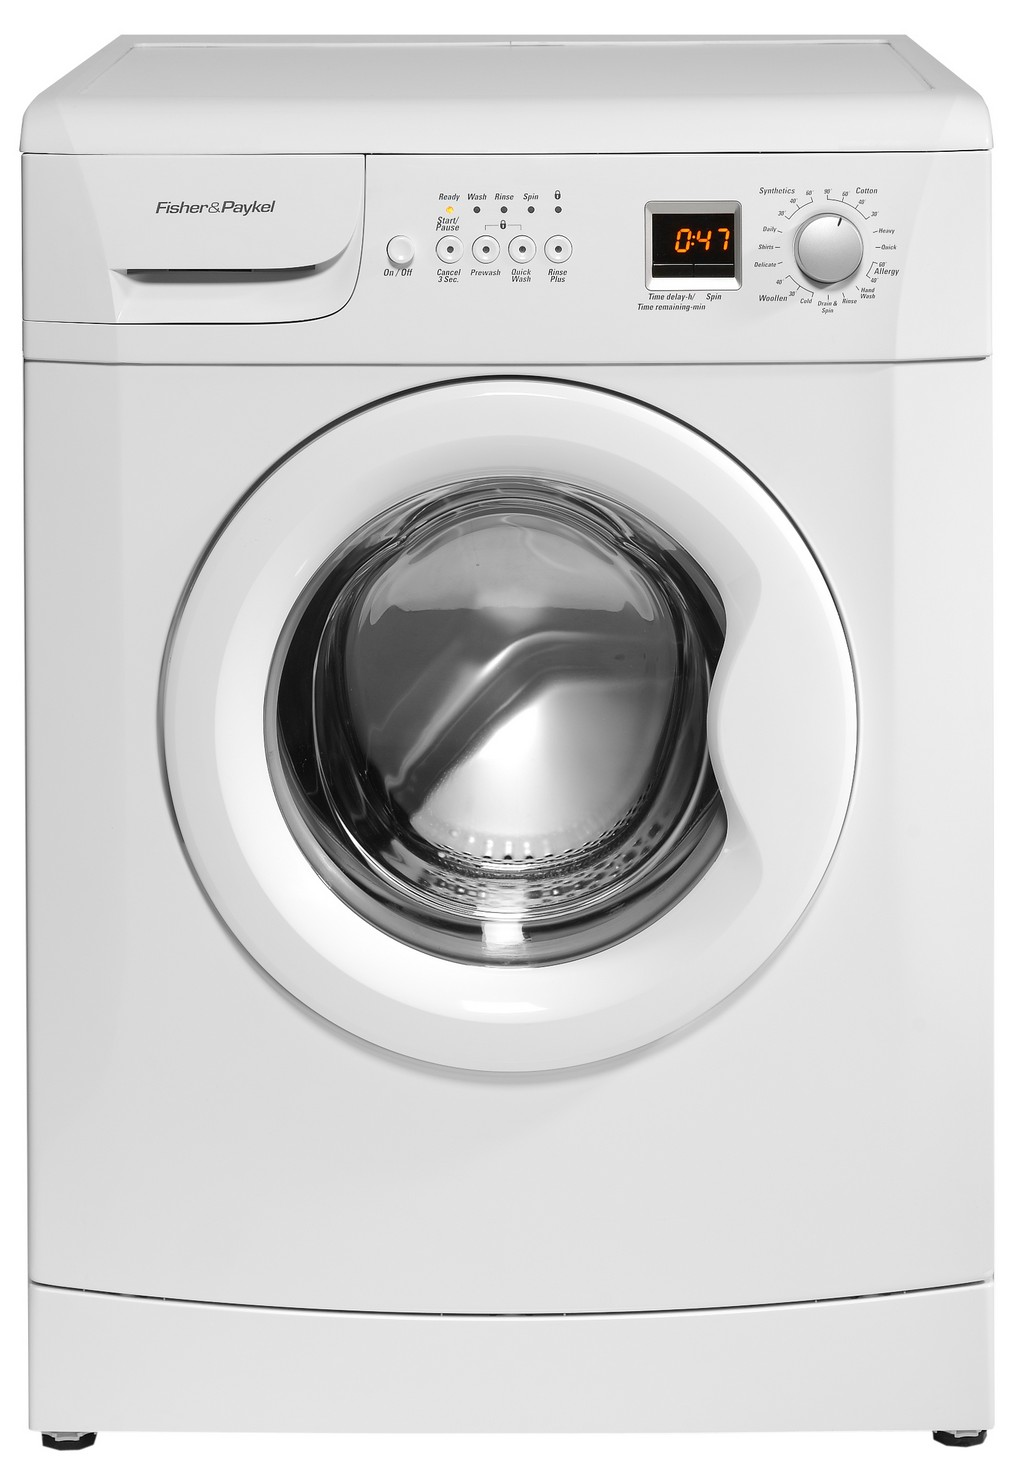 fisher and paykel washing machine, industrial washing machine, washing machine hoses